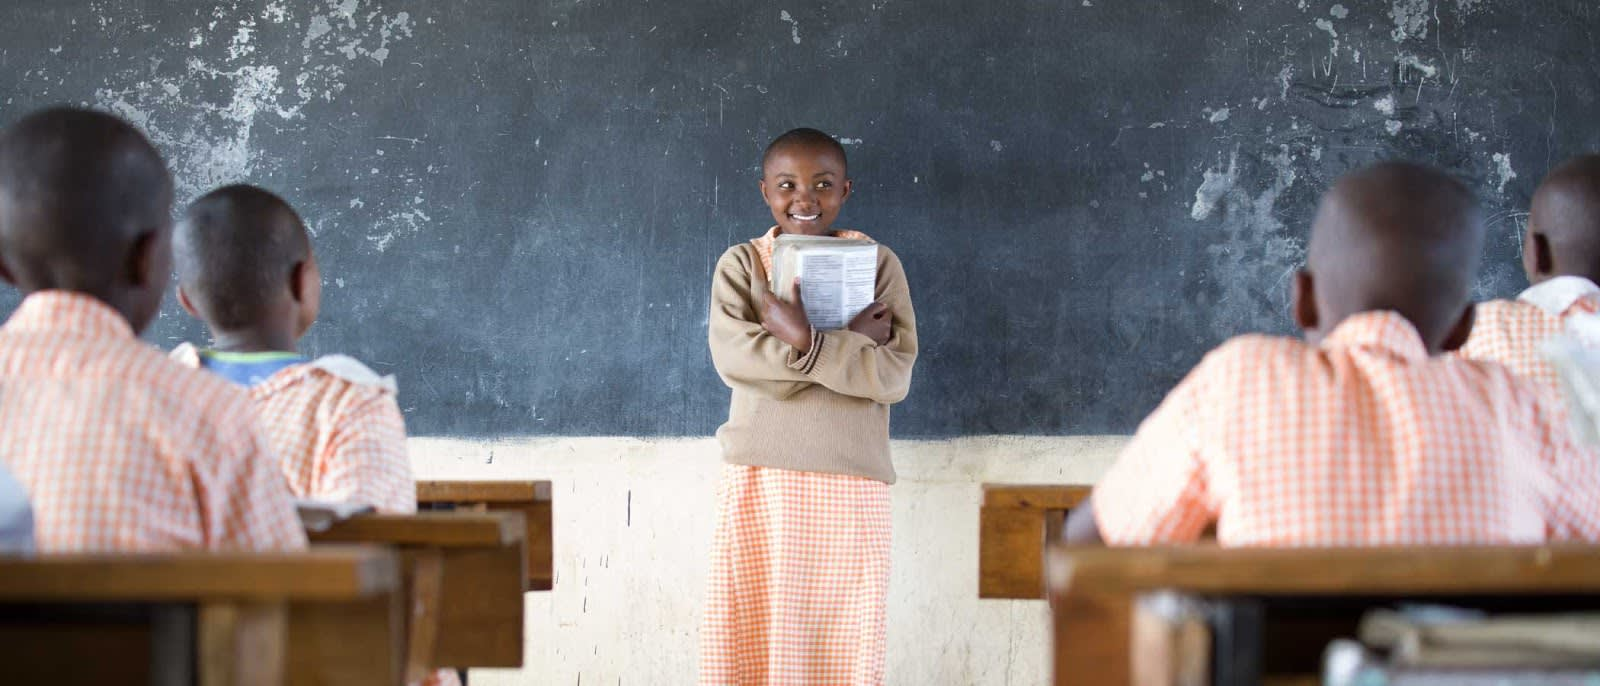 Girls in school are key to environmental sustainability and equality.